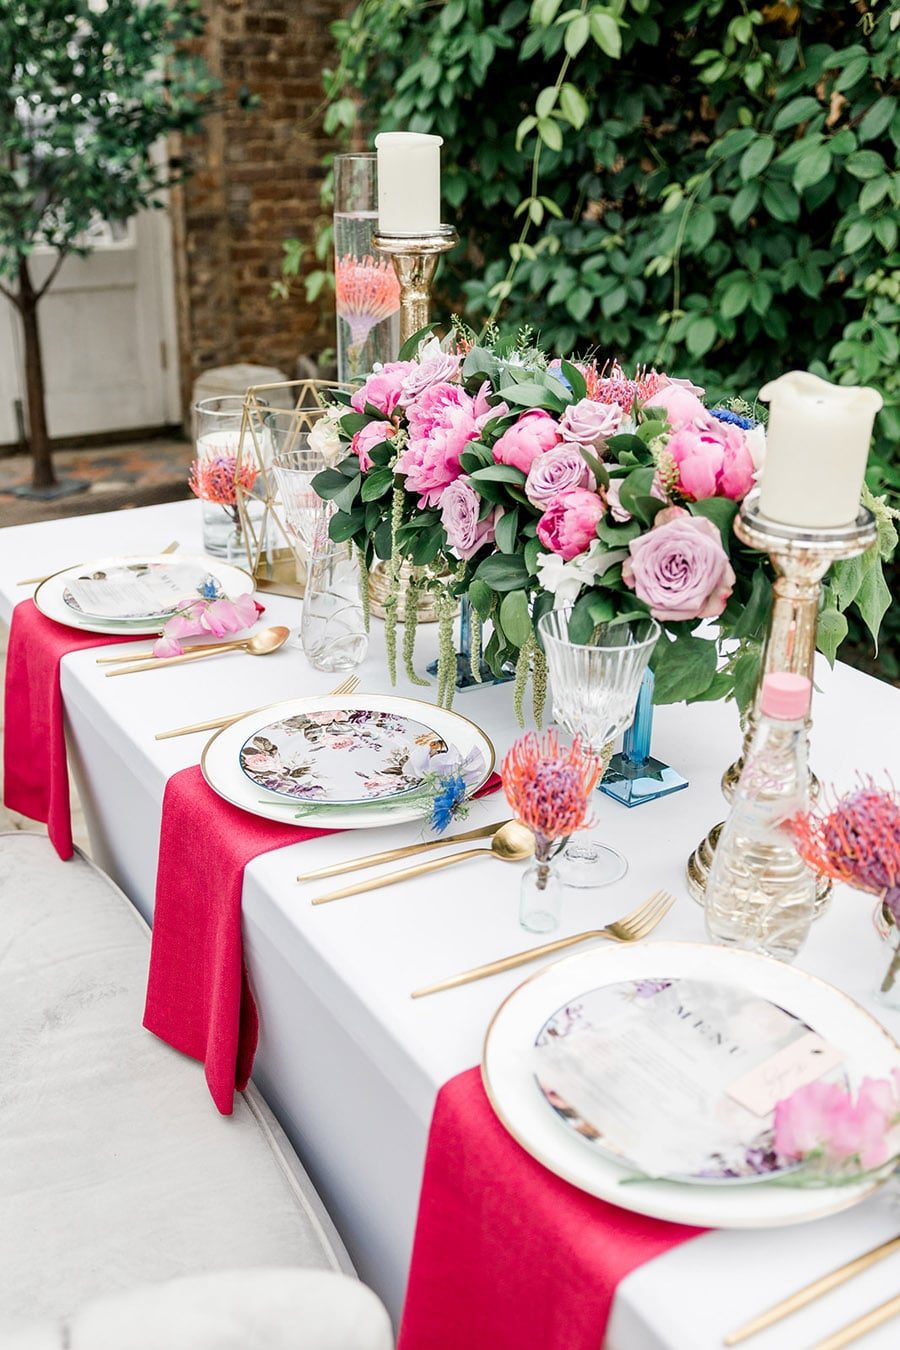 Slindon College wedding inspiration for table setting